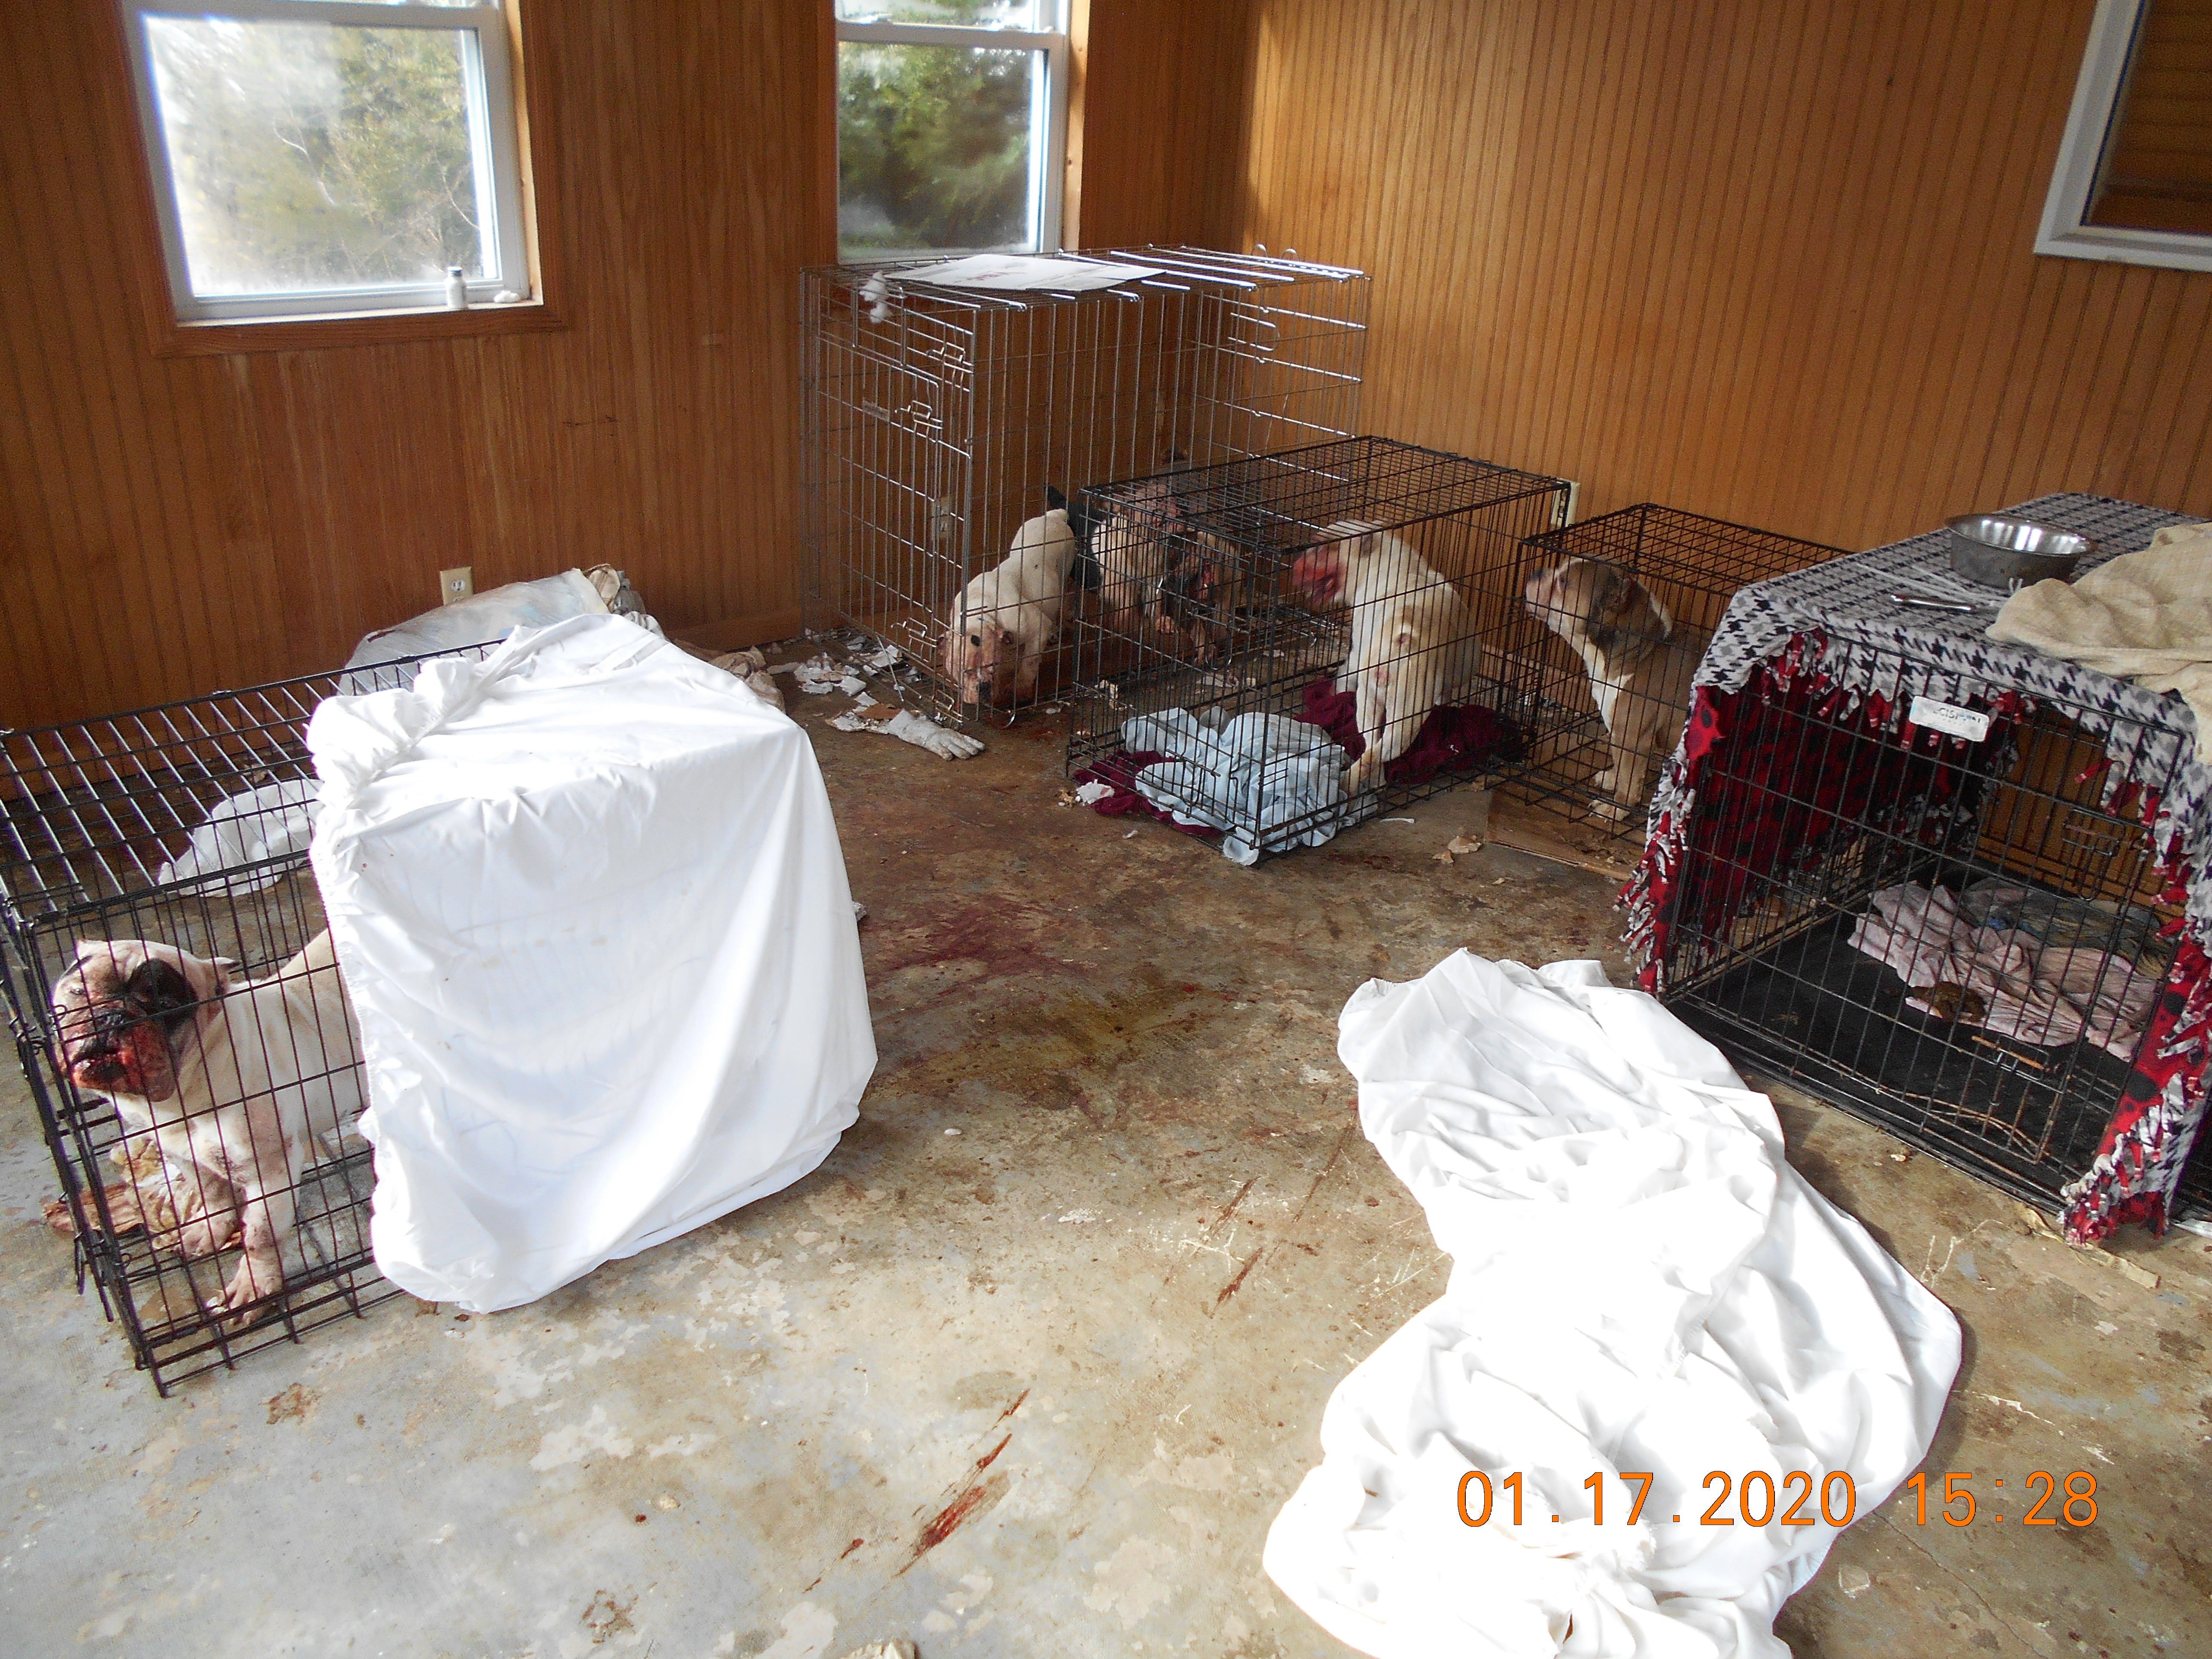 SPCA Executive Director Katie Timber said the dogs were stuck in cages for up to 18 hours a day. (WWMT/ Courtesy of SPCA Southwest Michigan)